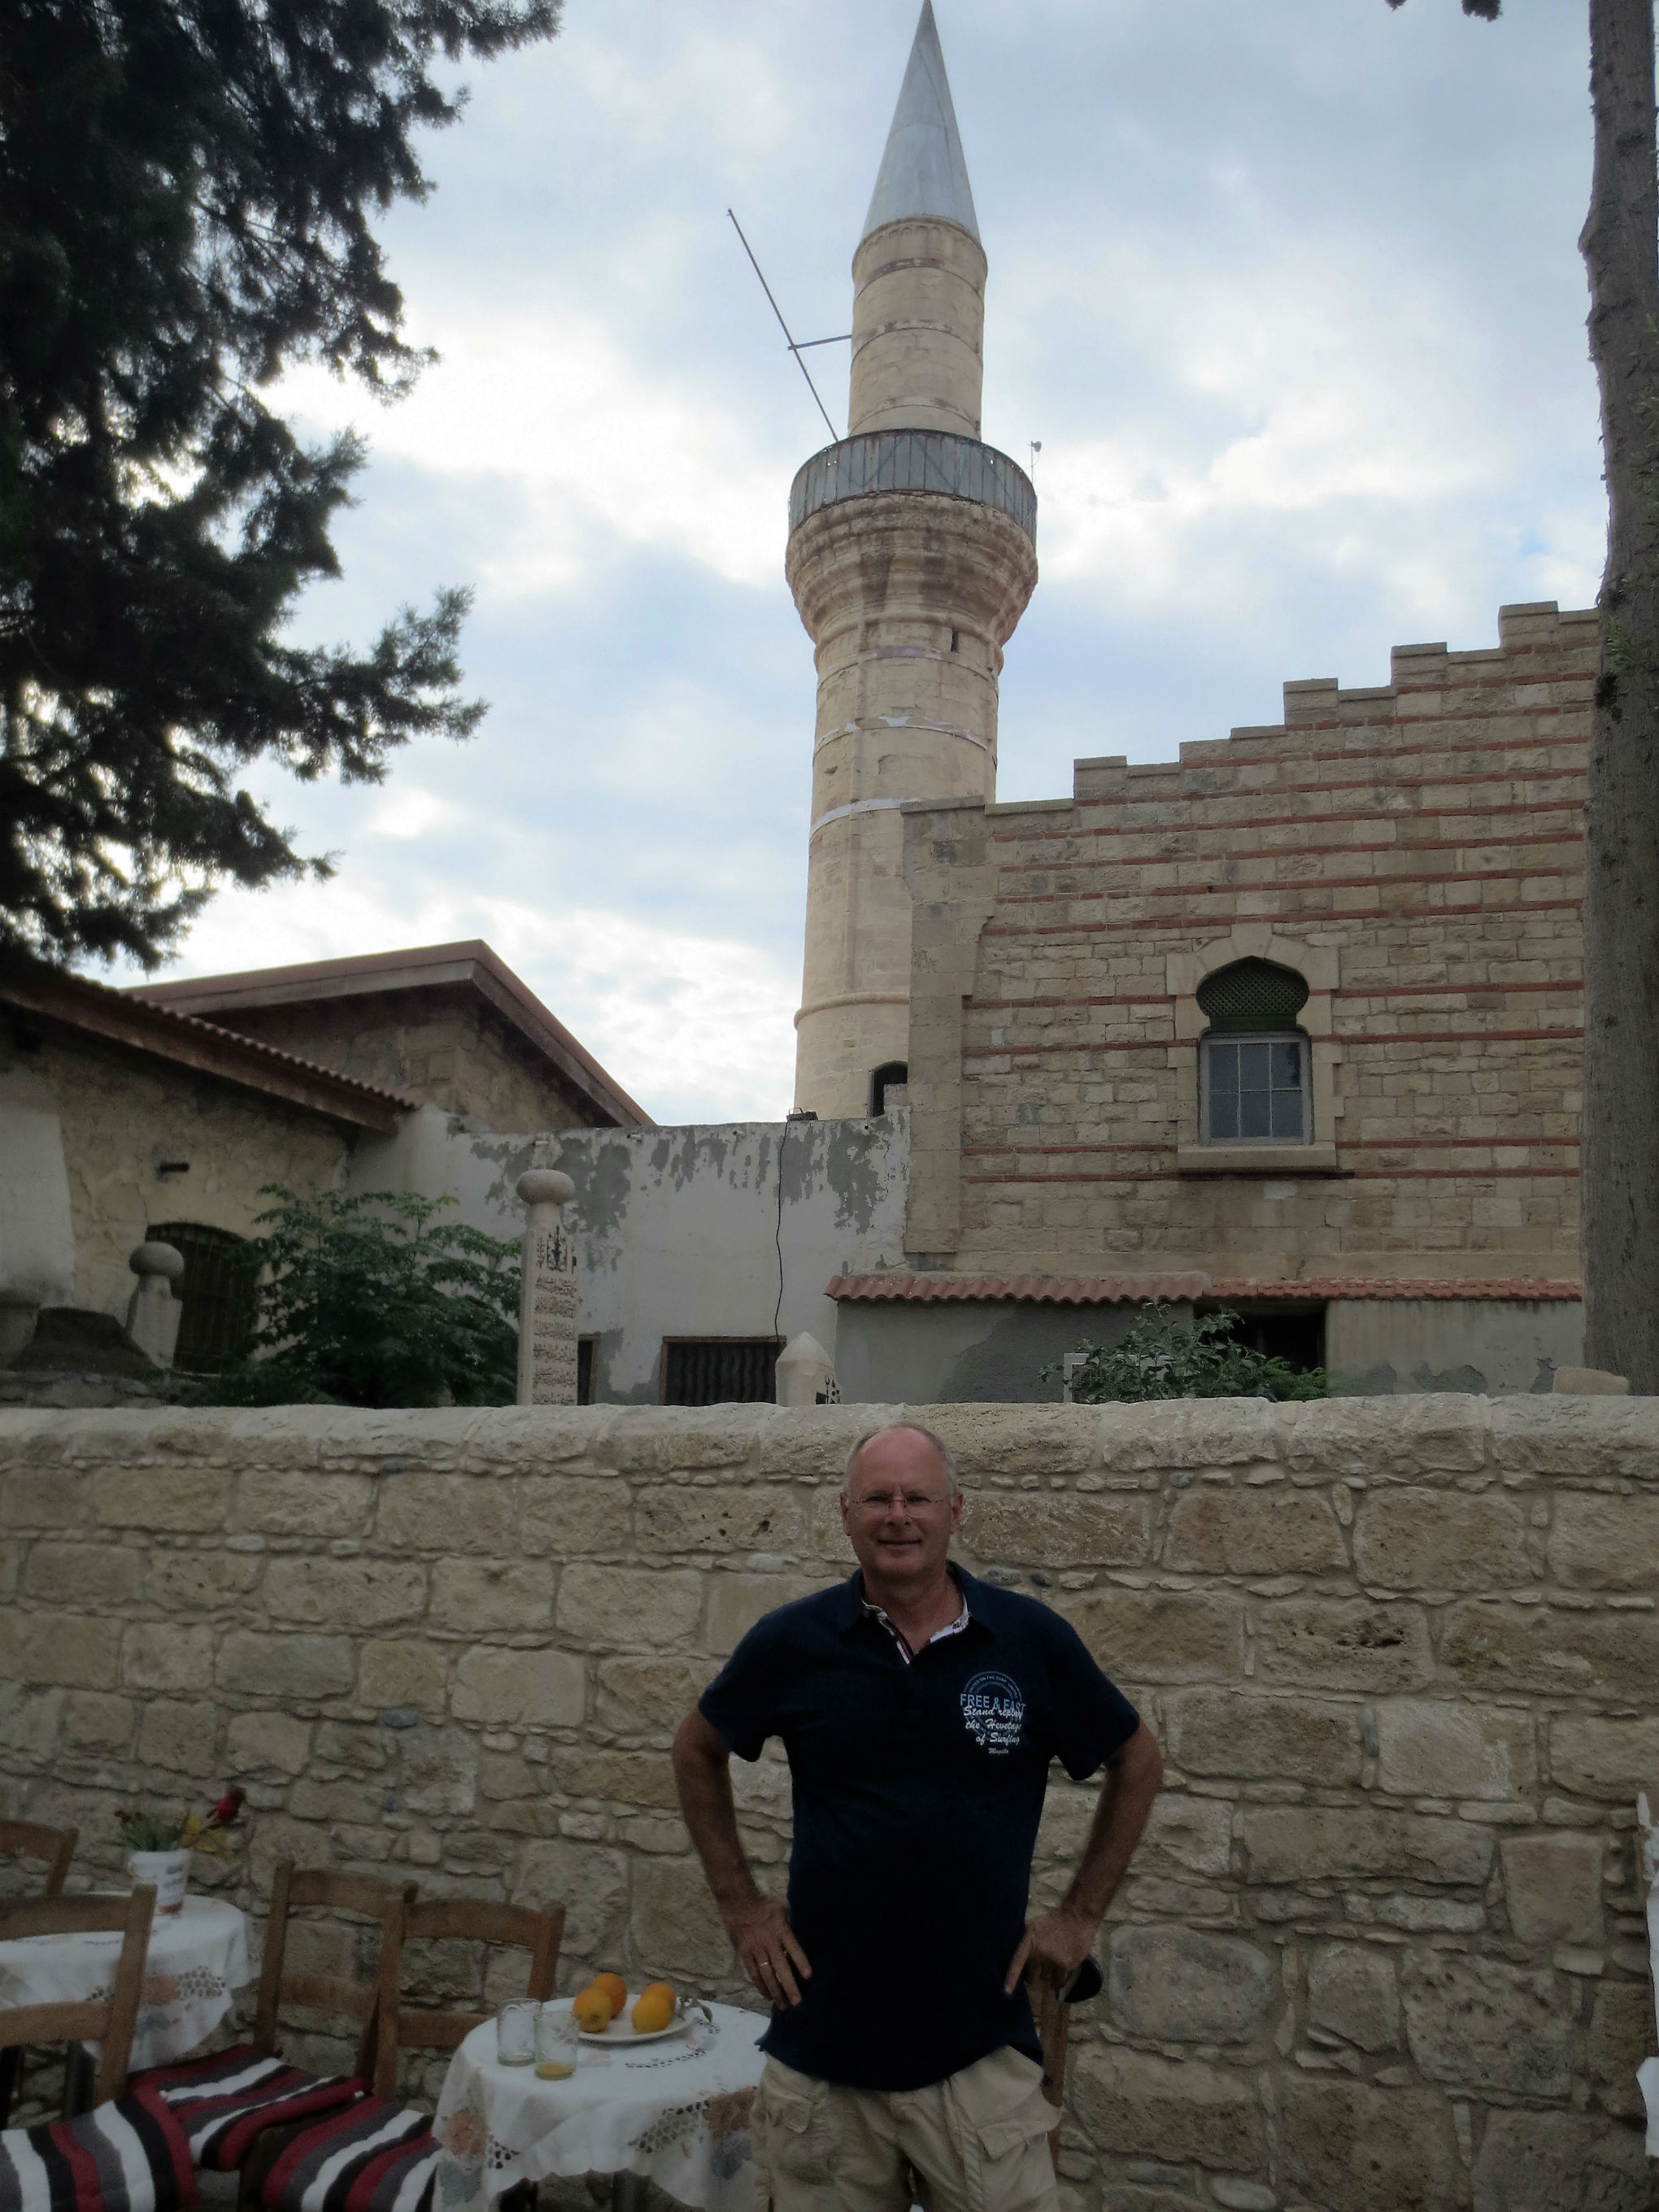 Kepir mosque in the old centre of Limassol. Still actively used by the small muslim community